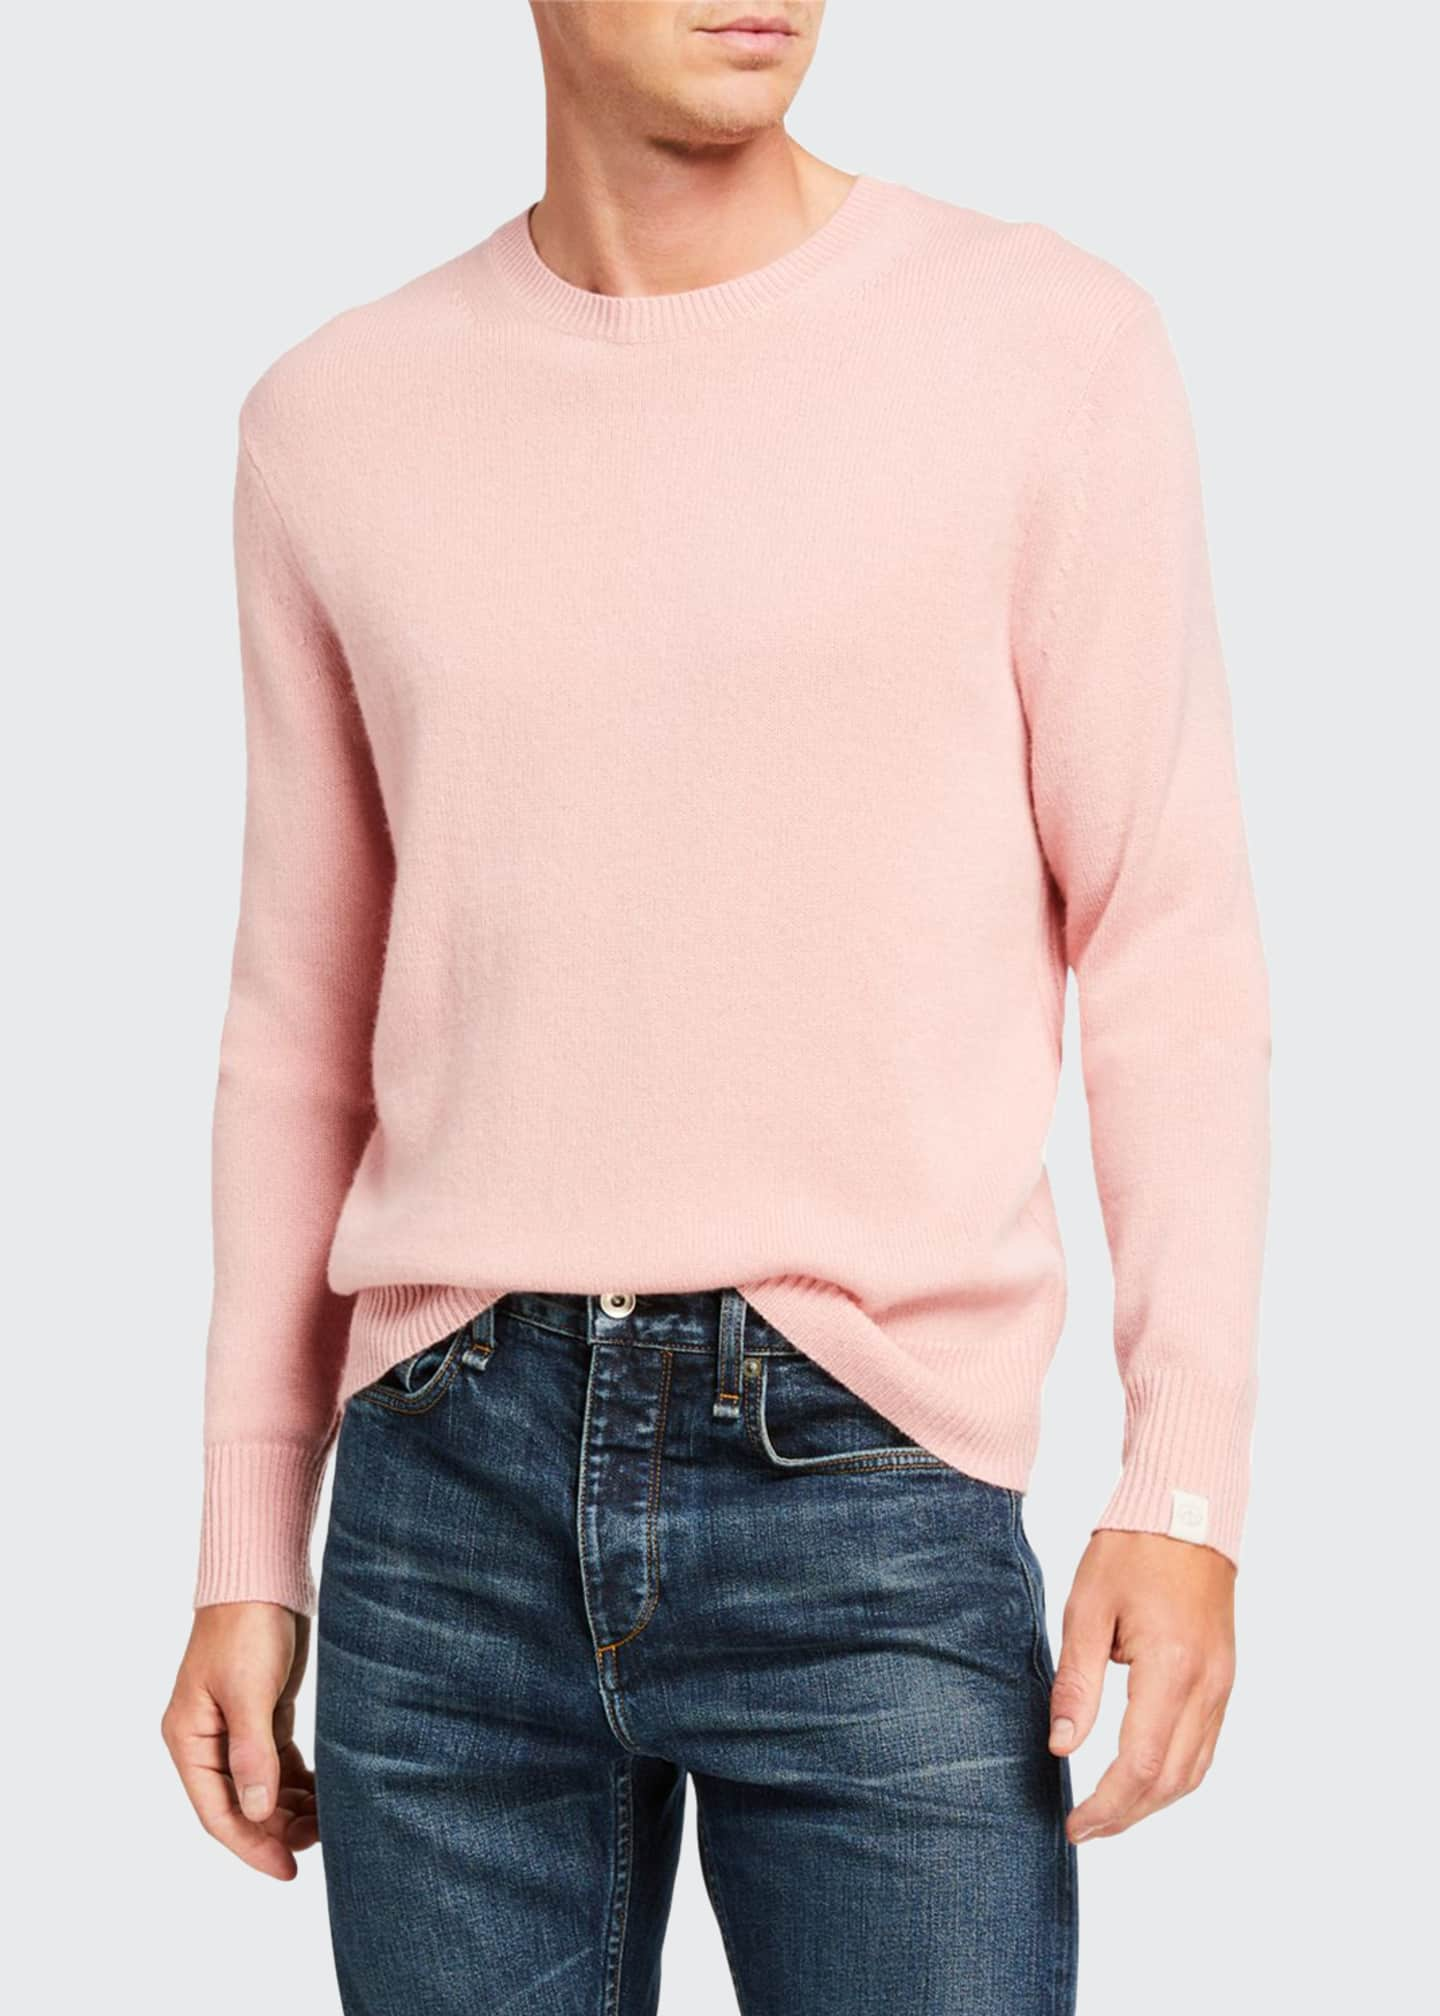 Rag & Bone Men's Haldon Crewneck Cashmere Sweater